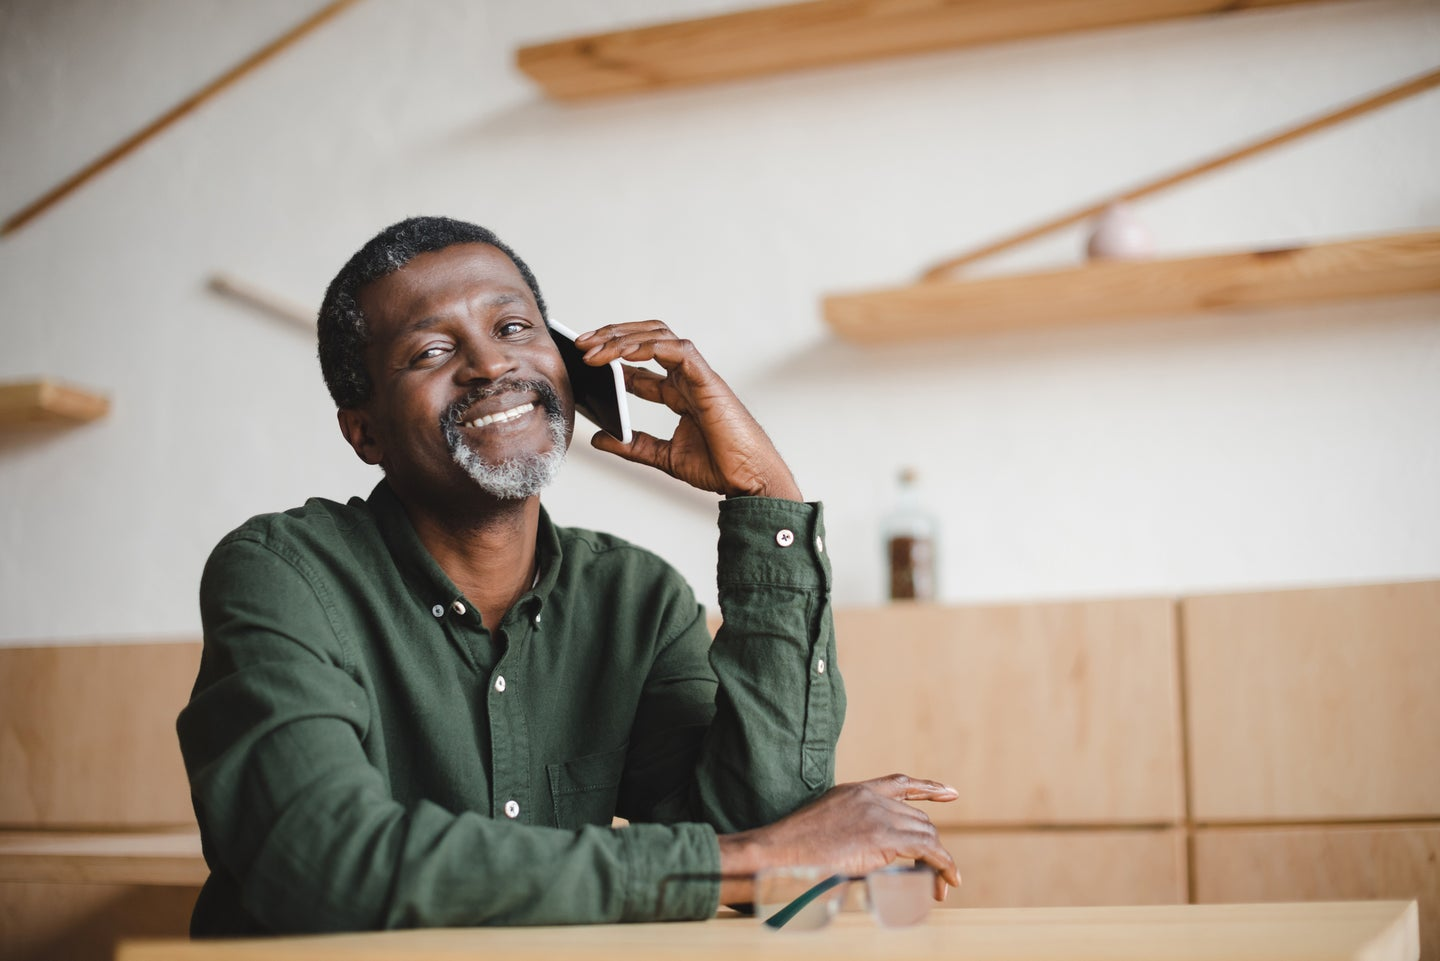 A Black middle-aged individual talking on a smartphone in a cafe